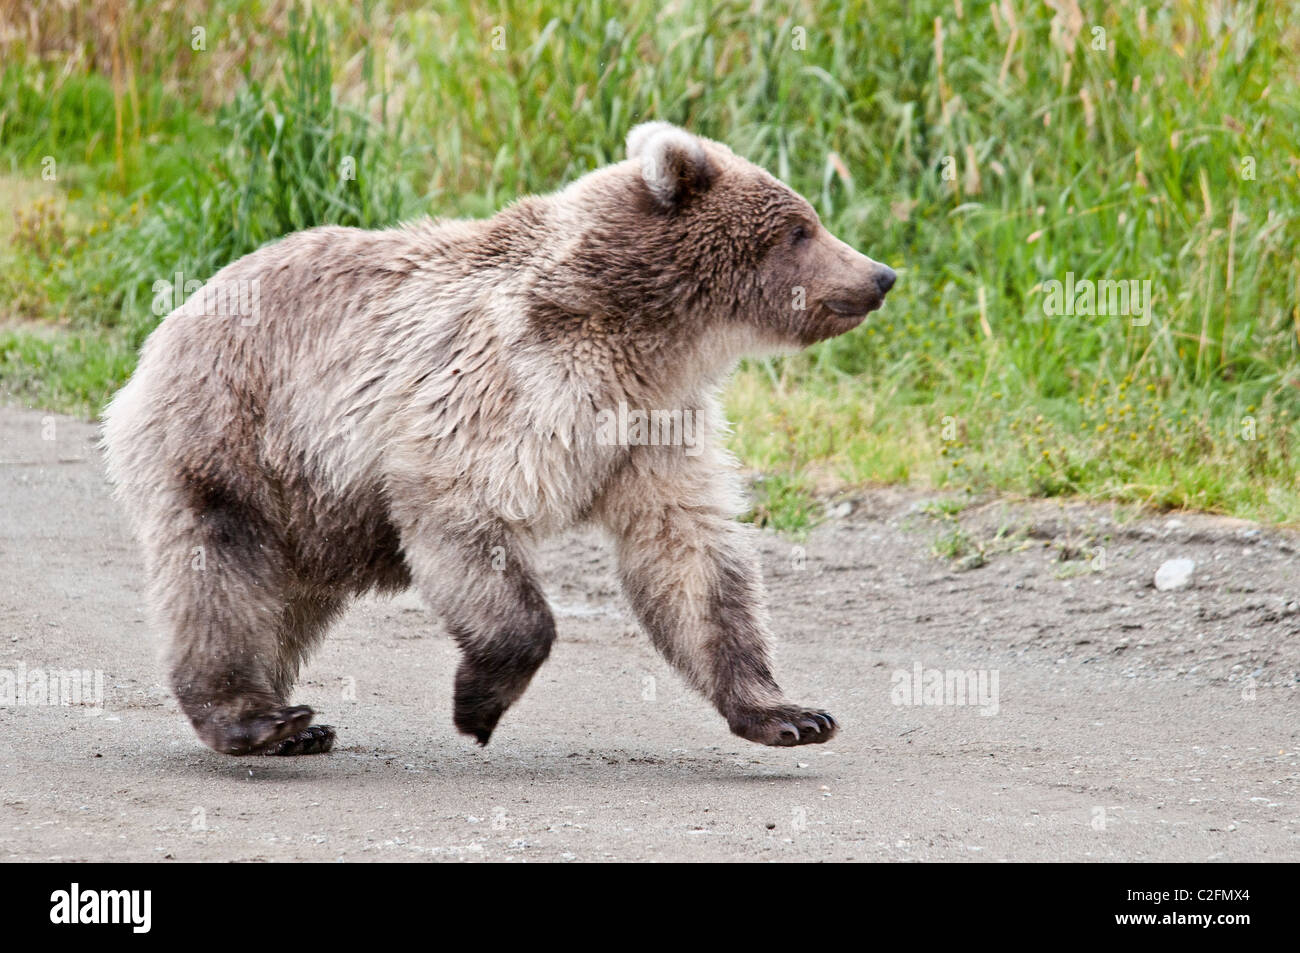 Grizzly Bear Cub Running, Ursus arctos horriblis, Brooks River, Katmai National Park, Alaska, USA - Stock Image